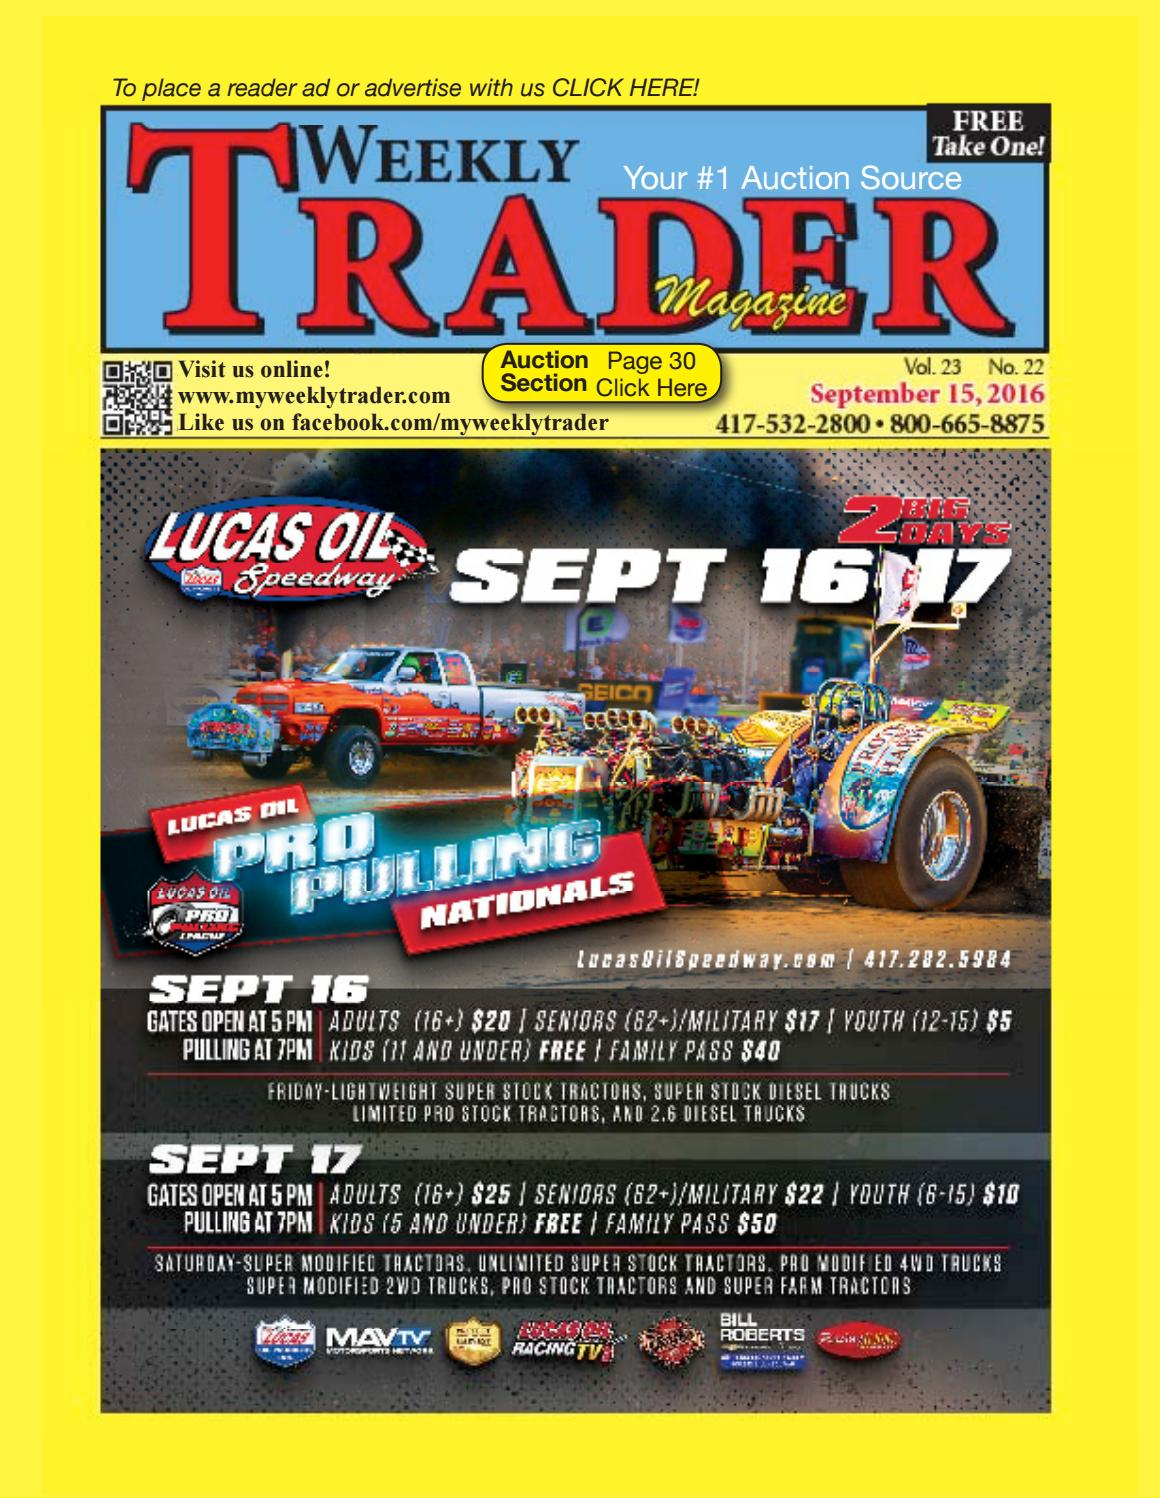 Weekly Trader September 15, 2016 by Weekly Trader - issuu